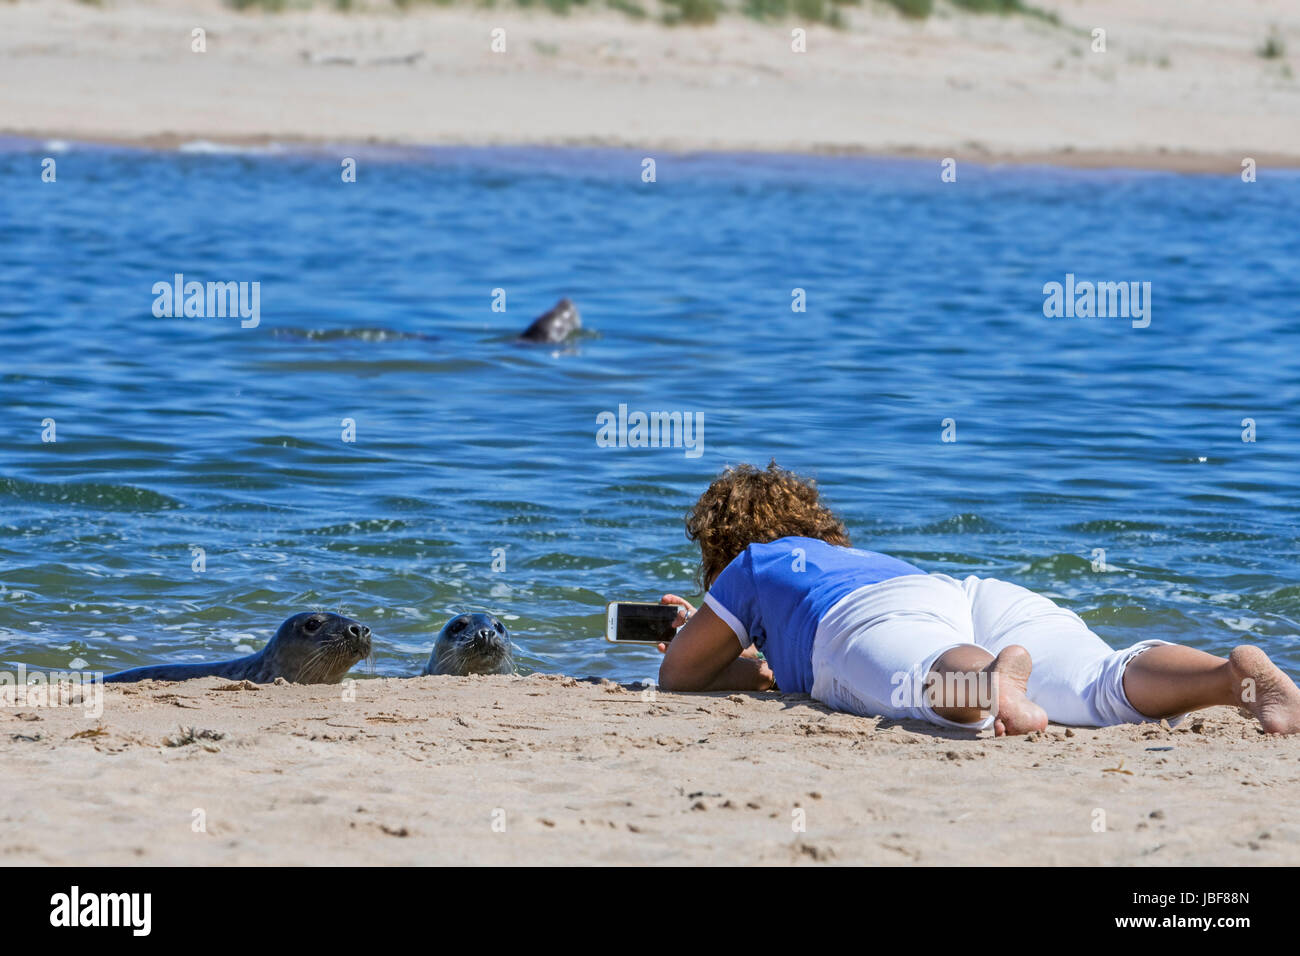 woman-lying-on-her-belly-on-the-beach-and-taking-pictures-with-smartphone-JBF88N.jpg